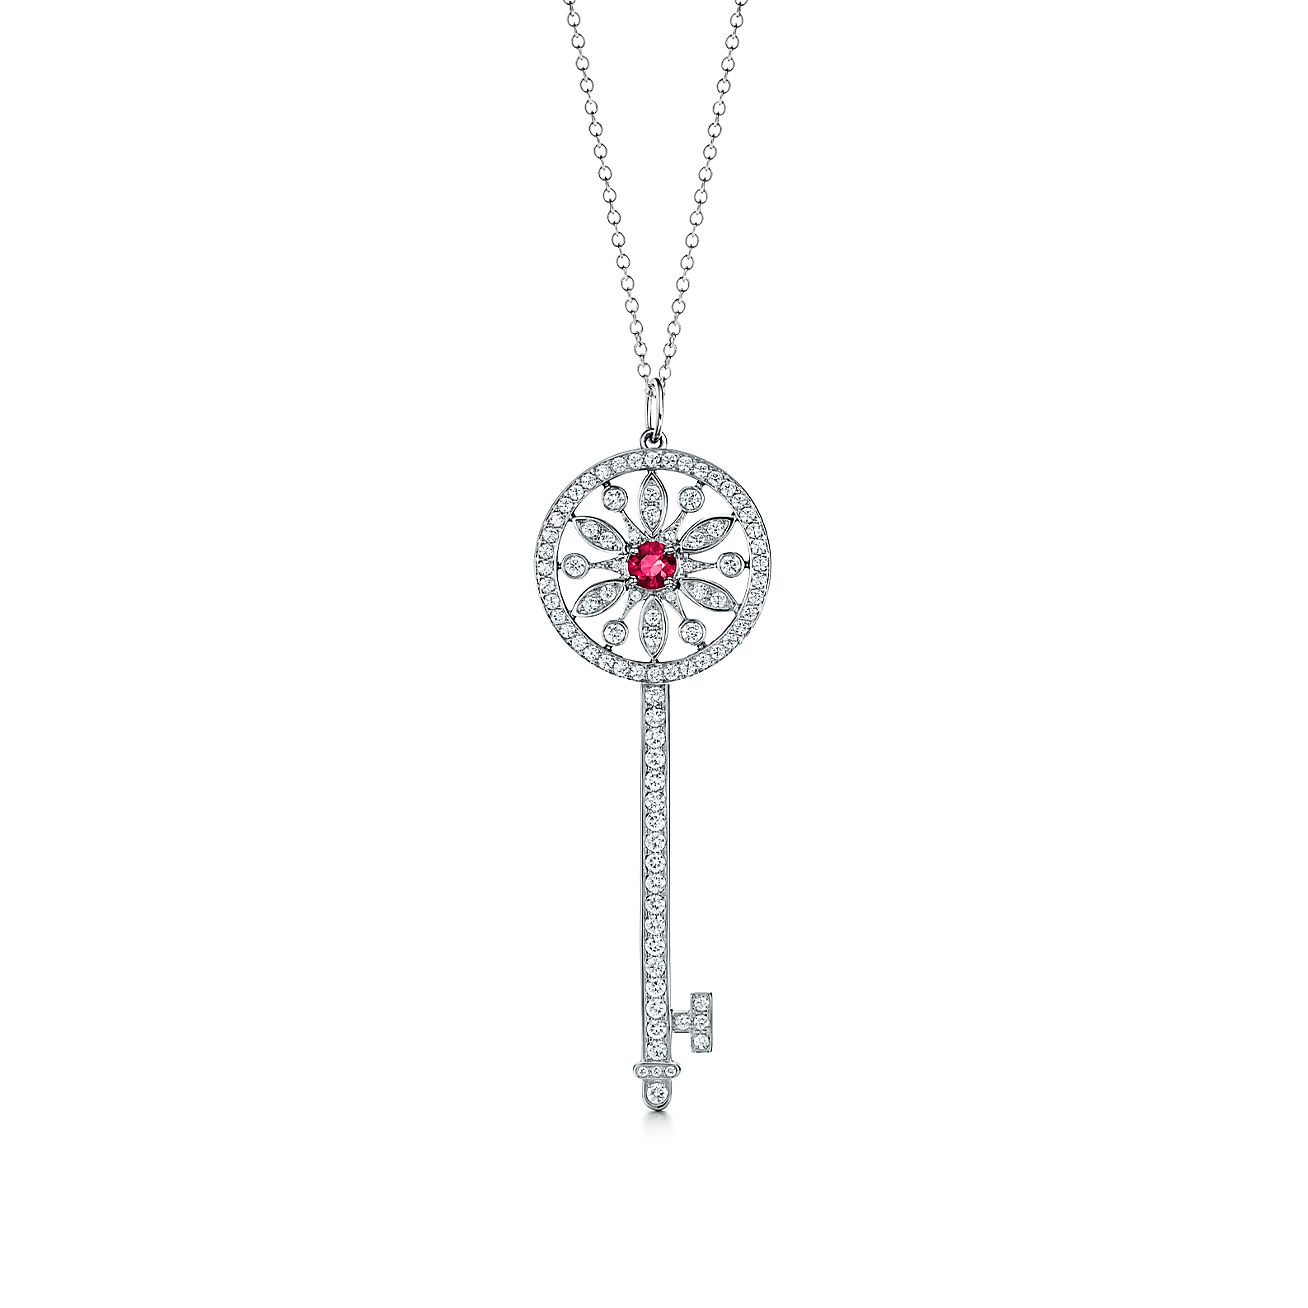 Tiffany keys round star key pendant in platinum with diamonds and tiffany keysround star key pendant aloadofball Gallery